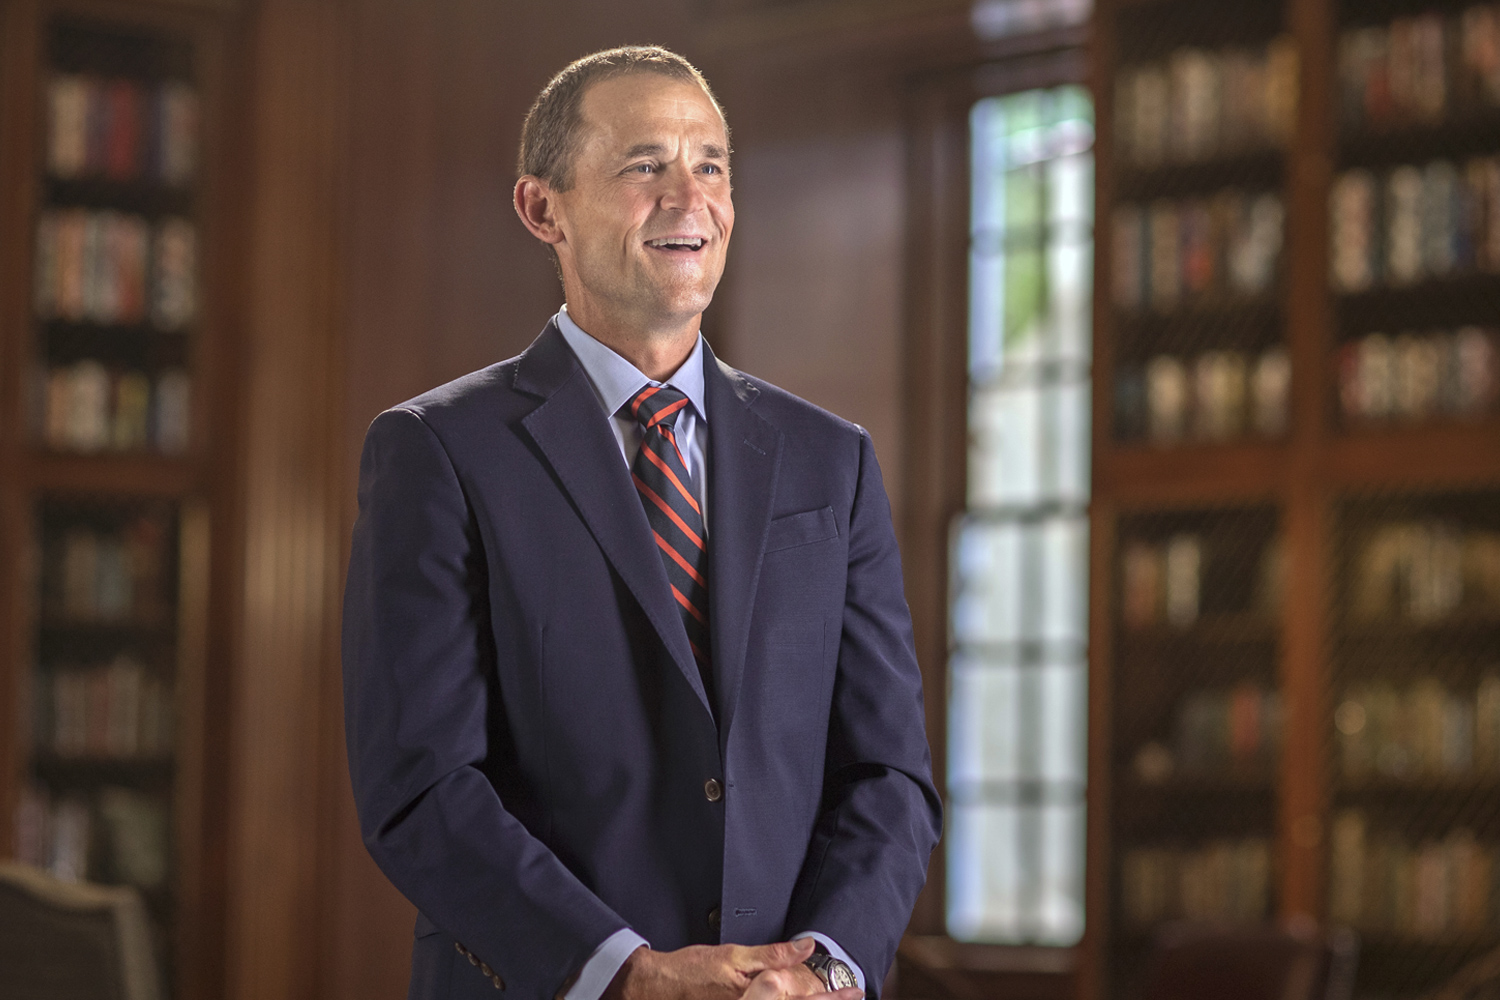 James E. Ryan earned his law degree from UVA and served on the School of Law faculty for 15 years. (Photo by Sanjay Suchak, University Communications)